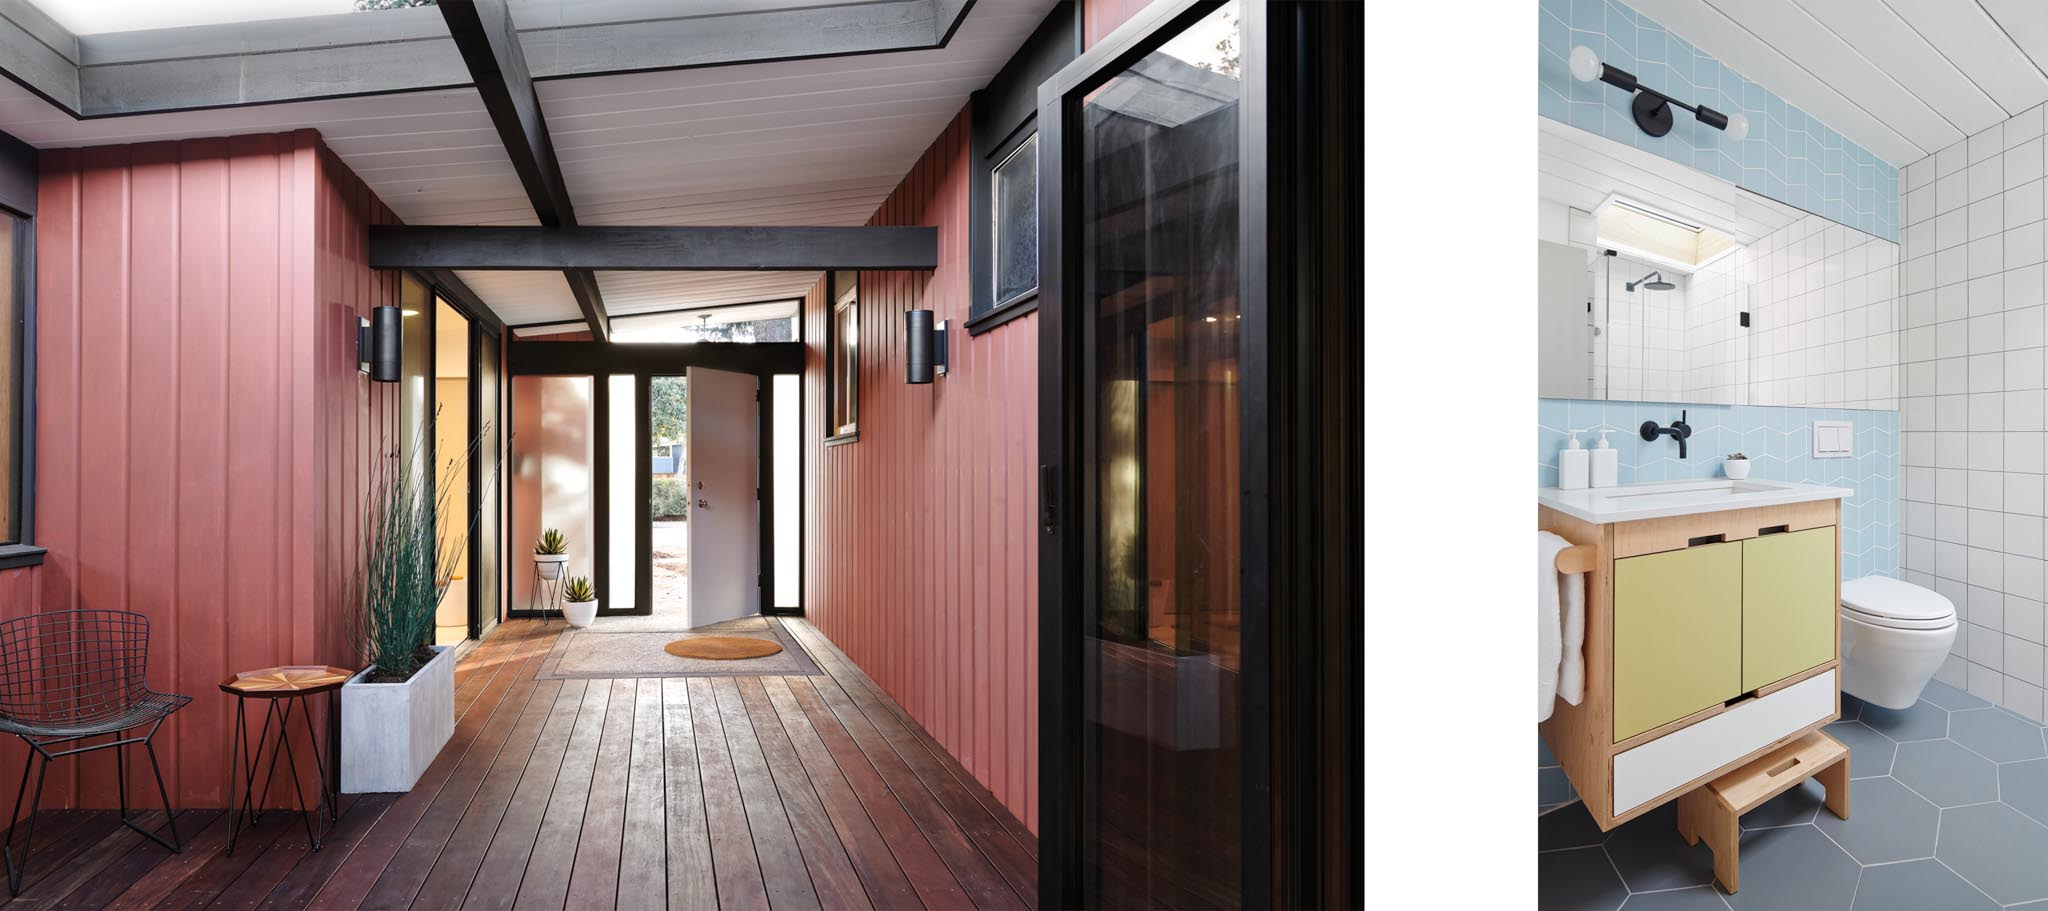 Eichler homes remodel details painted in international orange